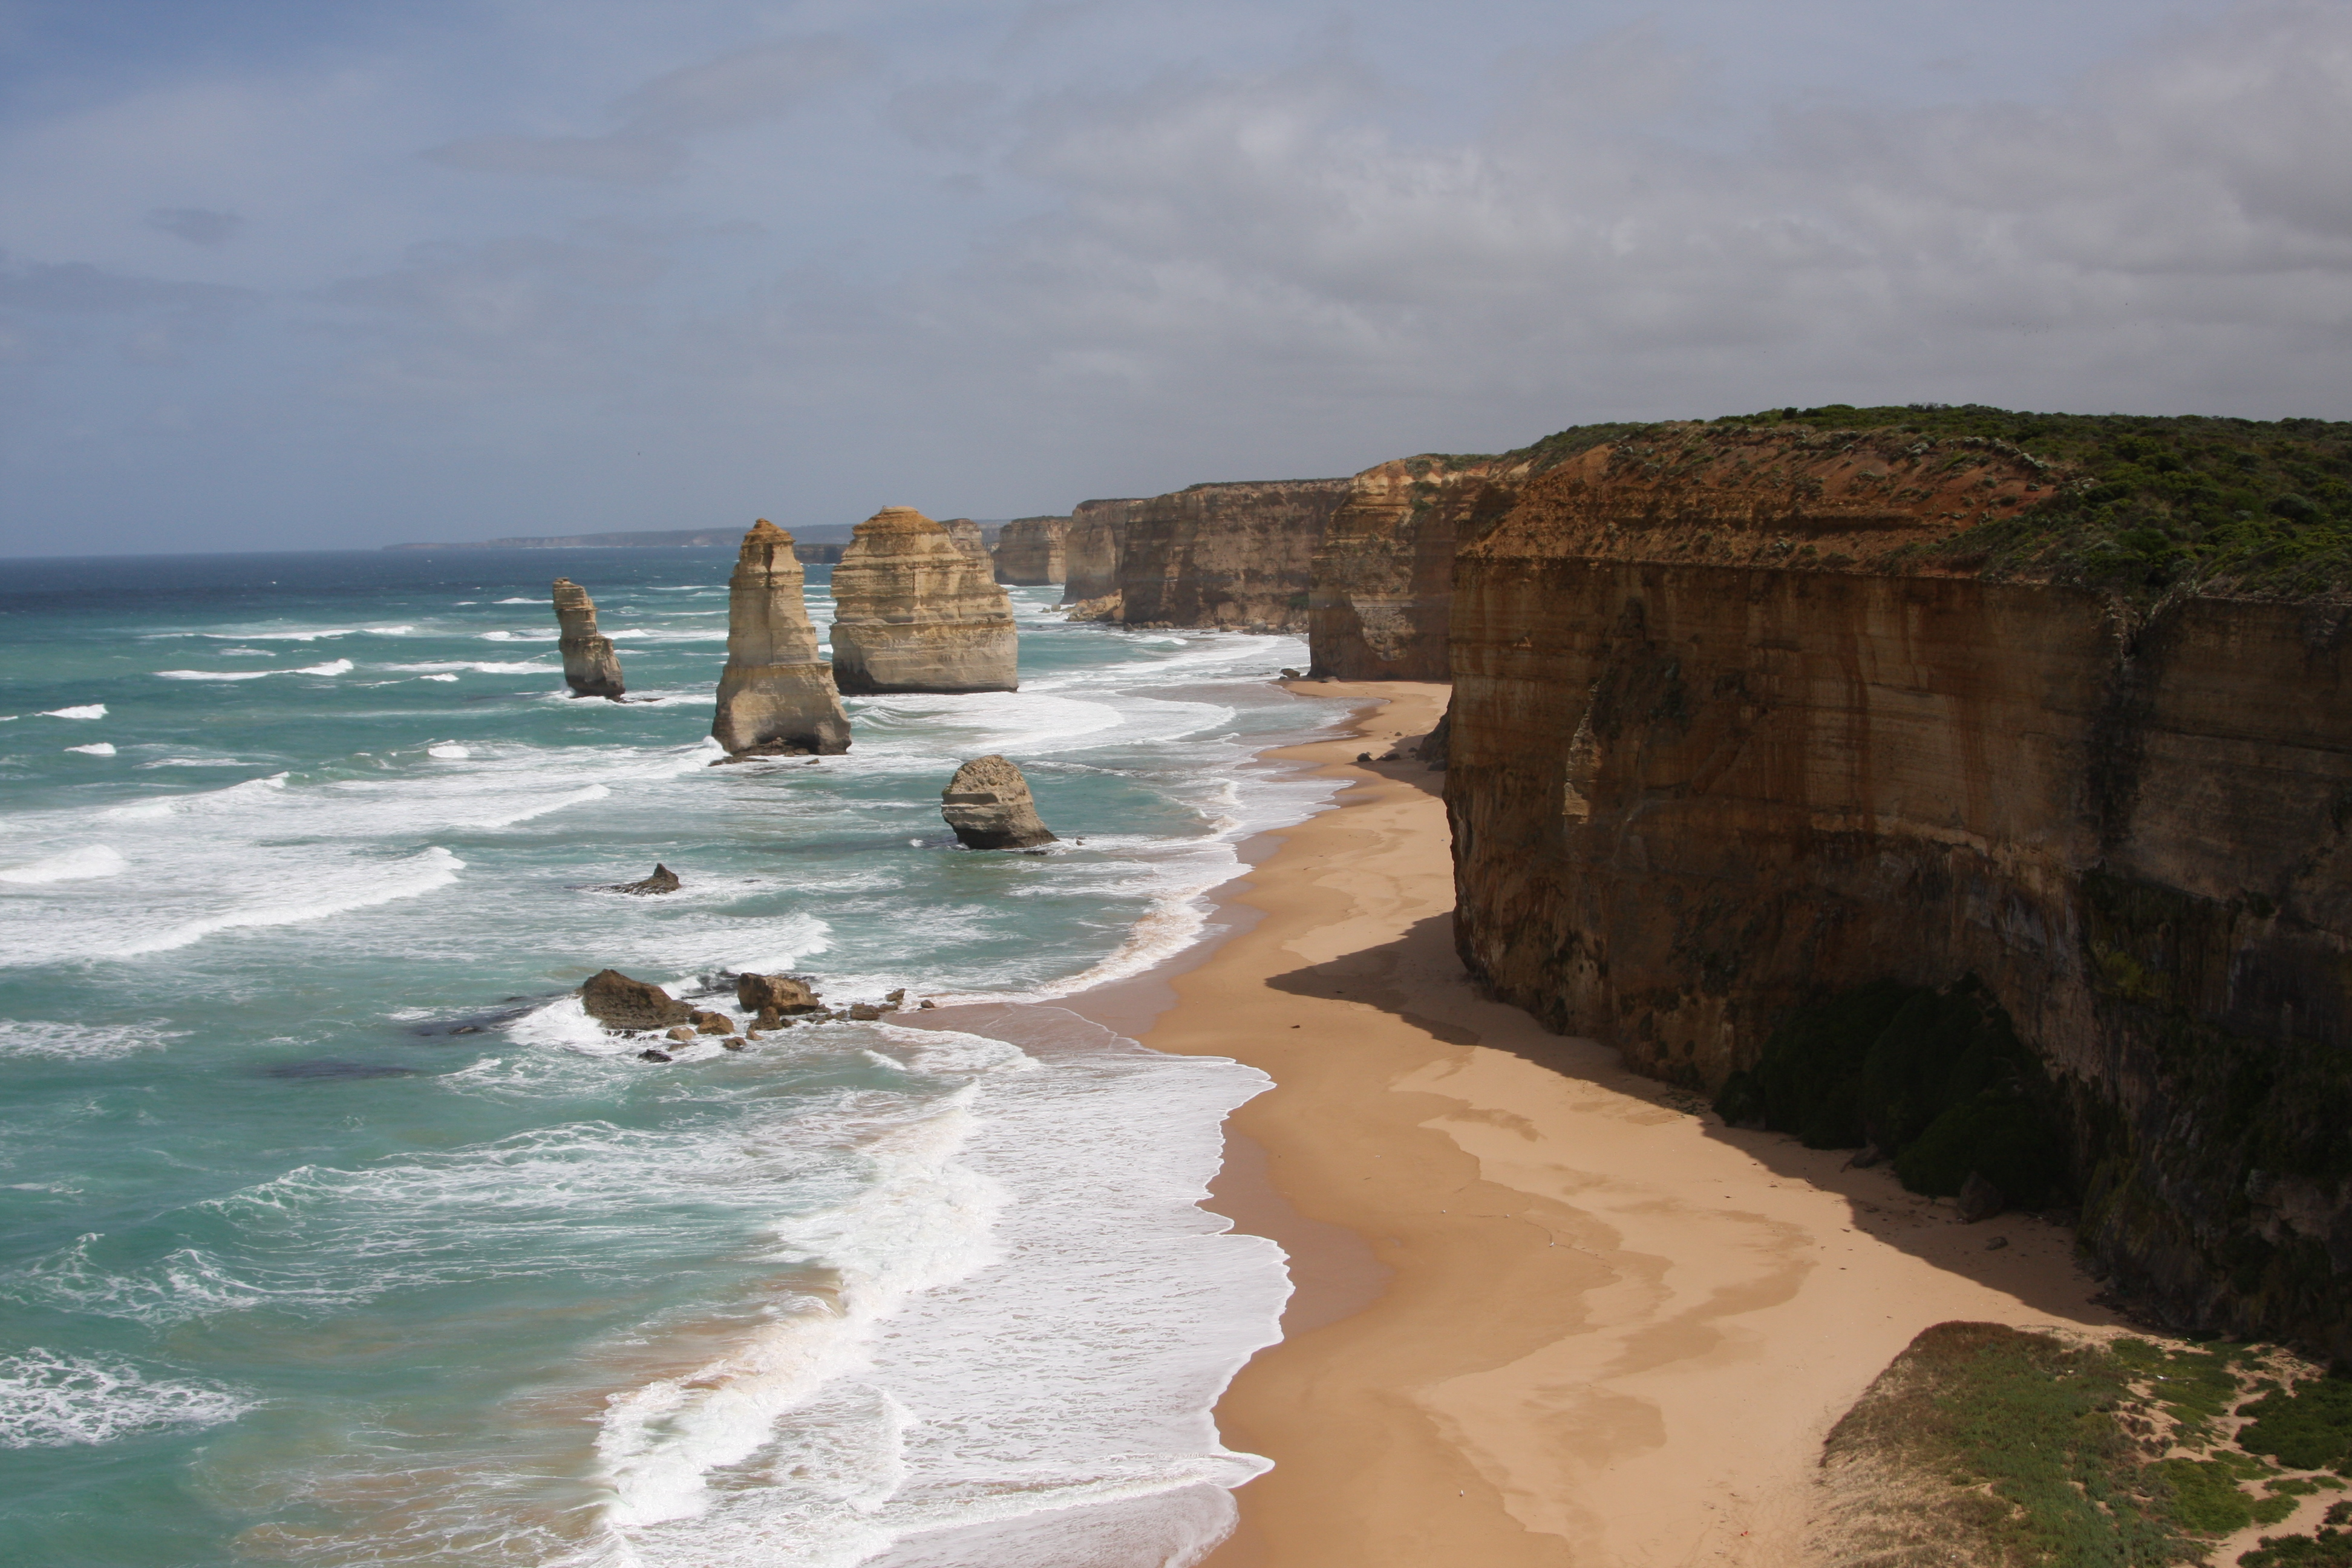 Spectacular view at a stop on the Great Ocean Road